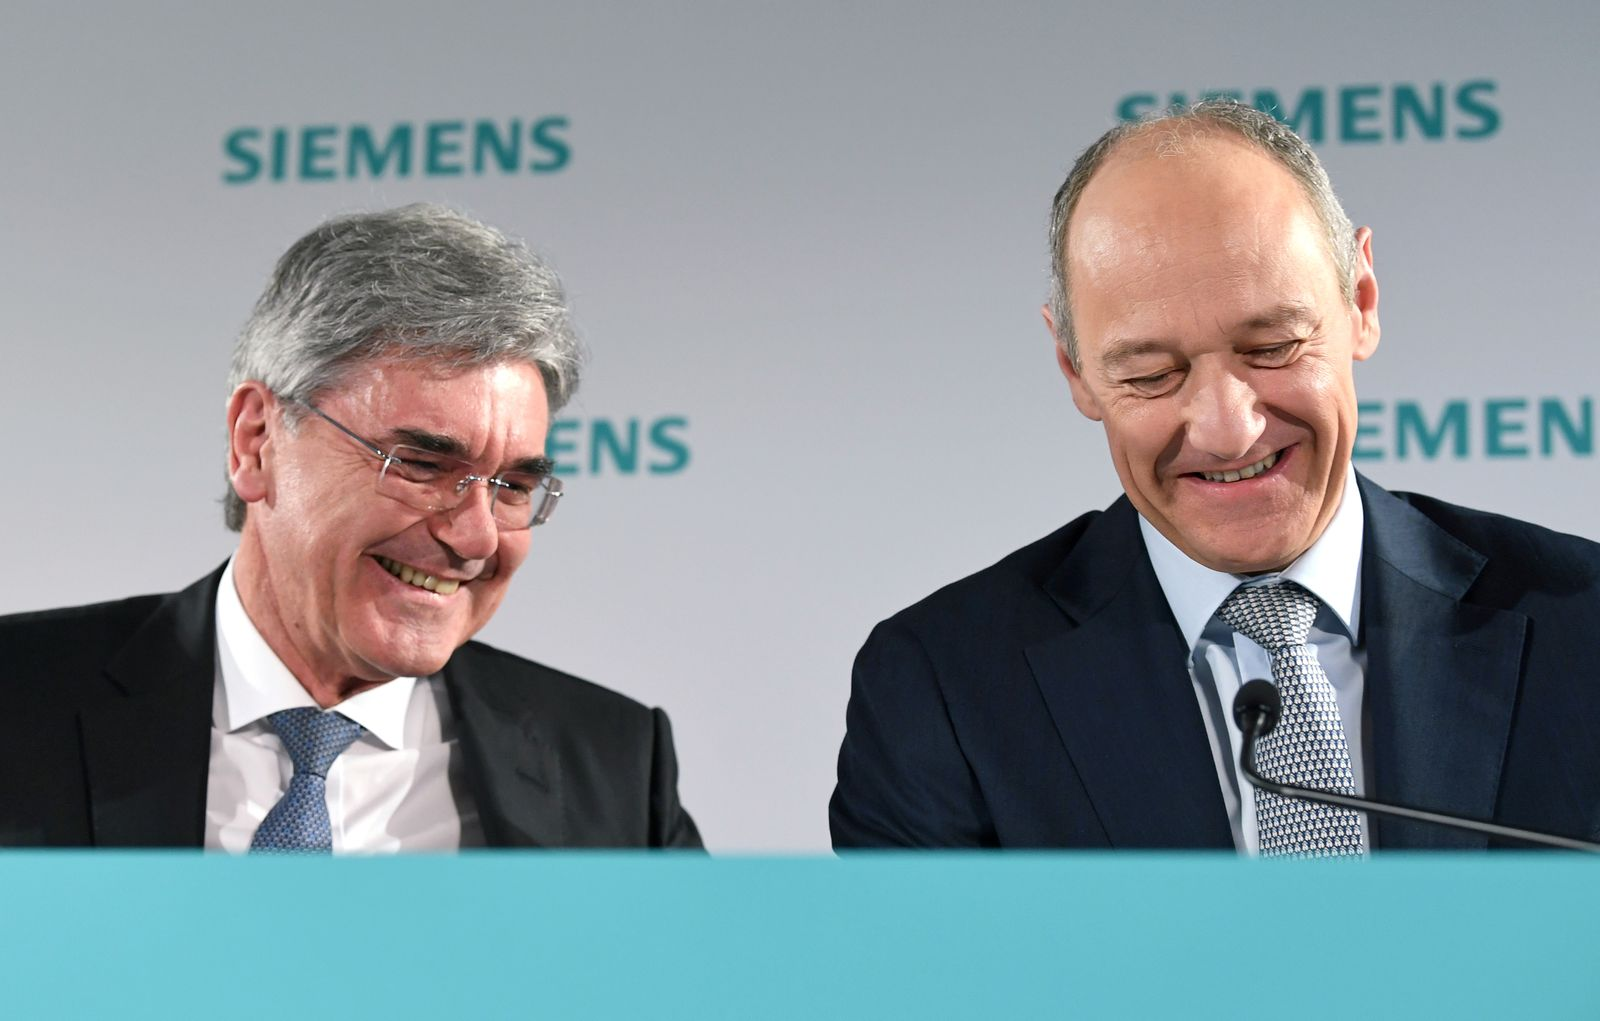 FILE PHOTO: German engineering group Siemens CEO Joe Kaeser and deputy CEO Roland Busch attend a news conference prior to the annual general meeting in Munich